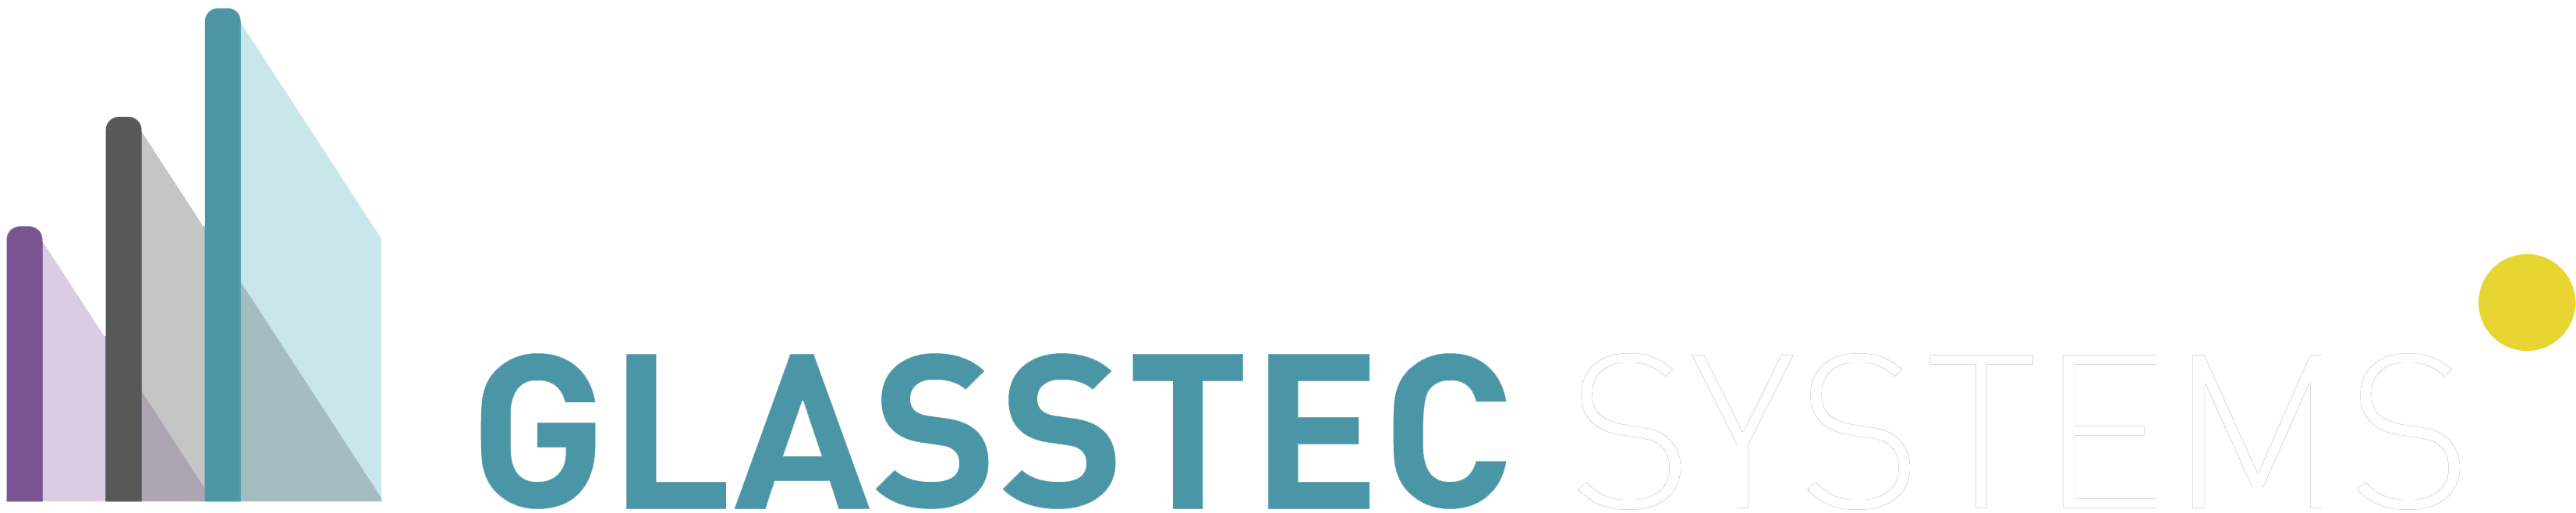 Glasstec Systems